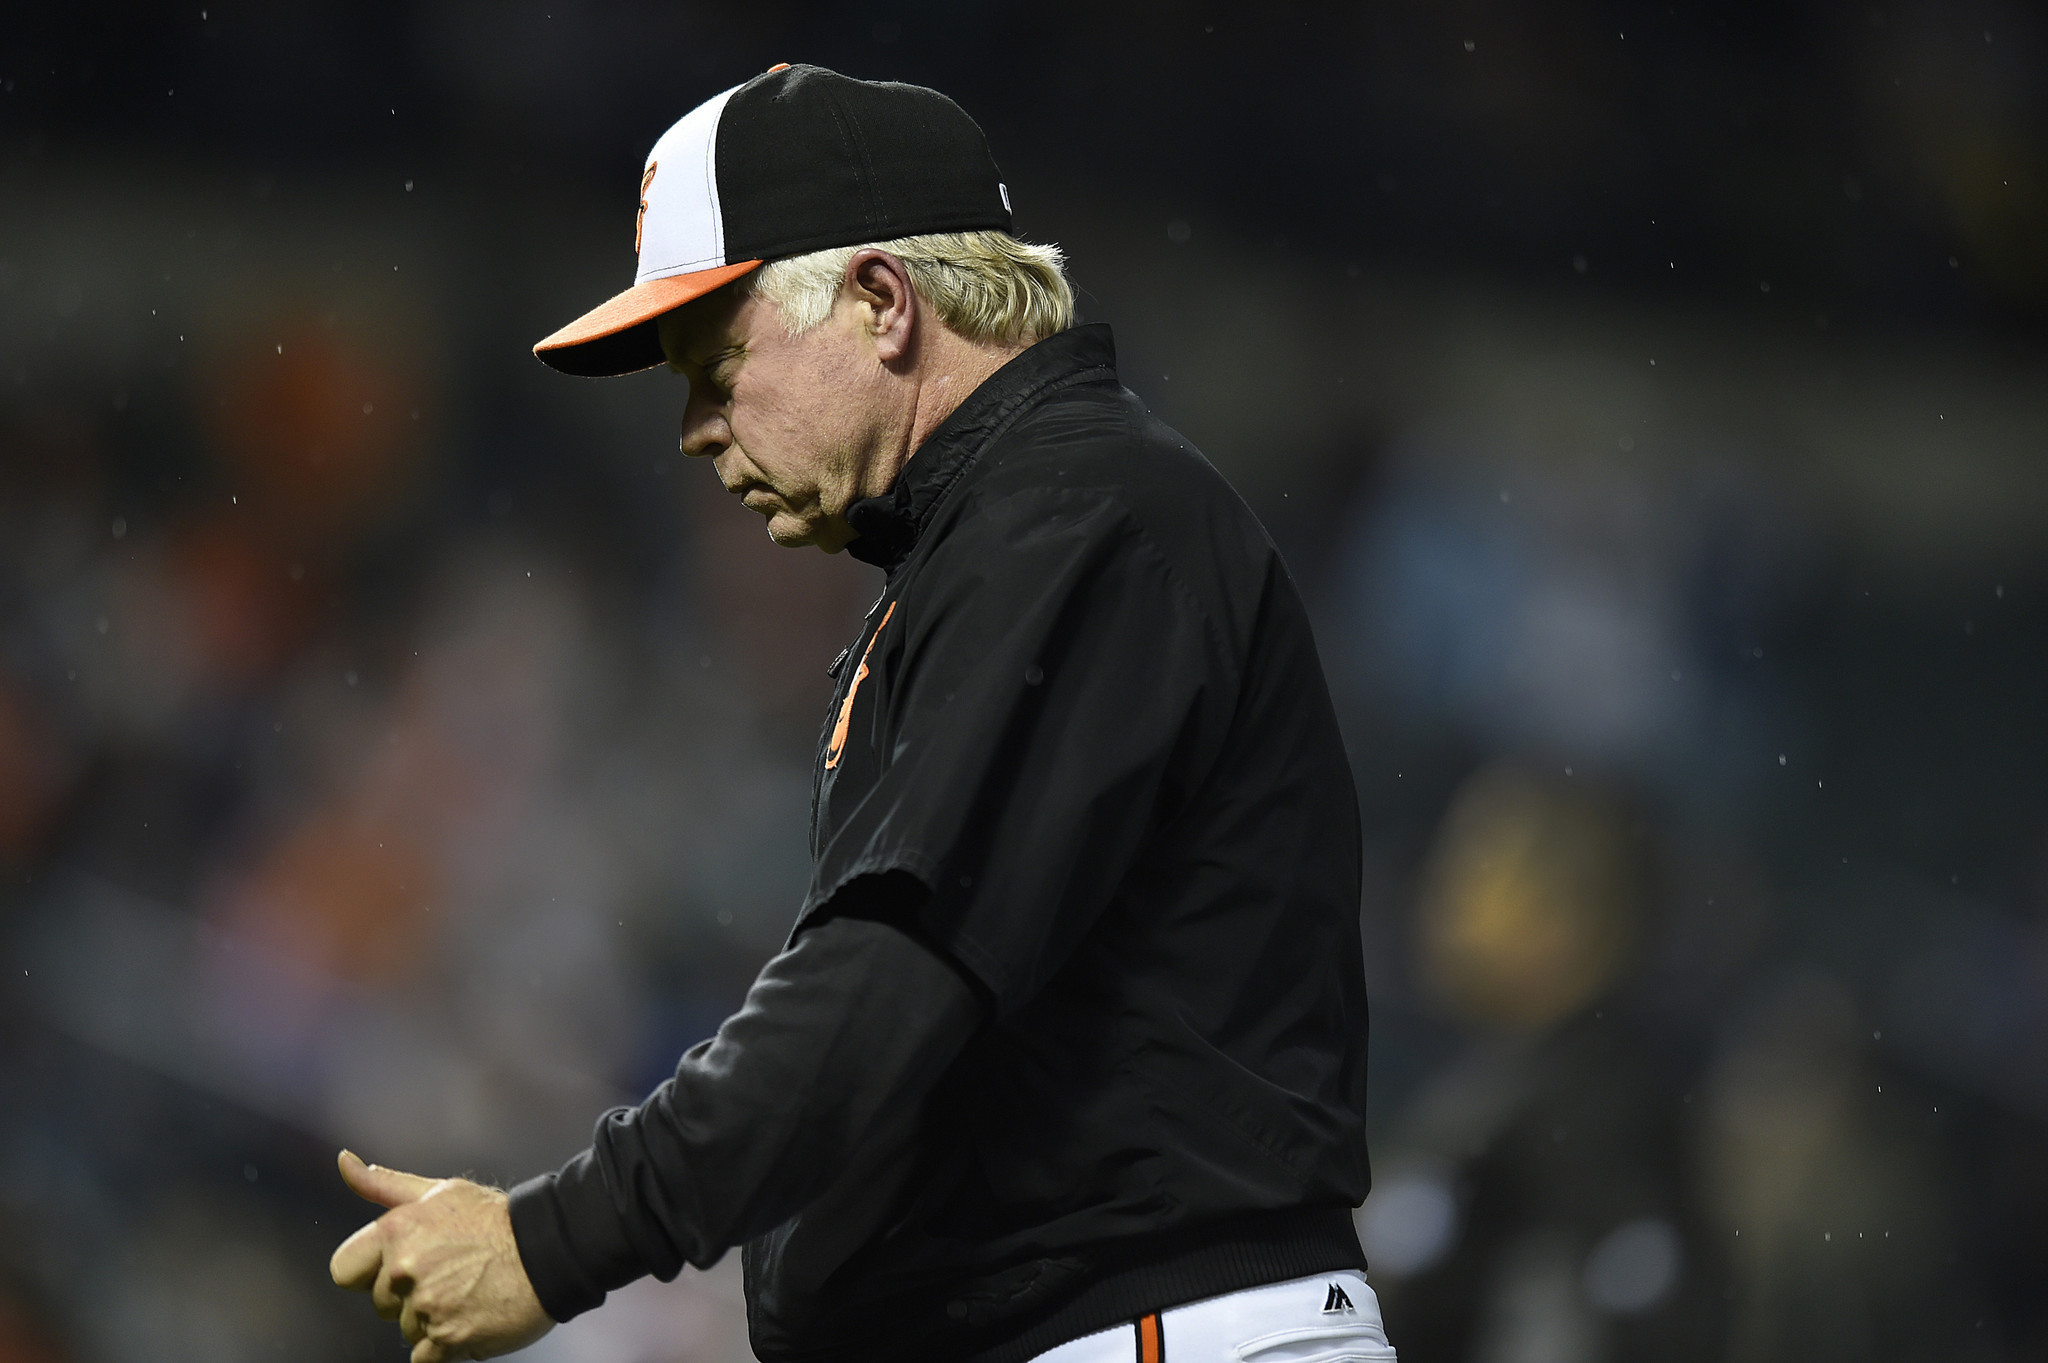 Bal-showalter-on-tarp-controversy-we-have-a-lot-more-important-things-to-worry-about-than-that-20160504